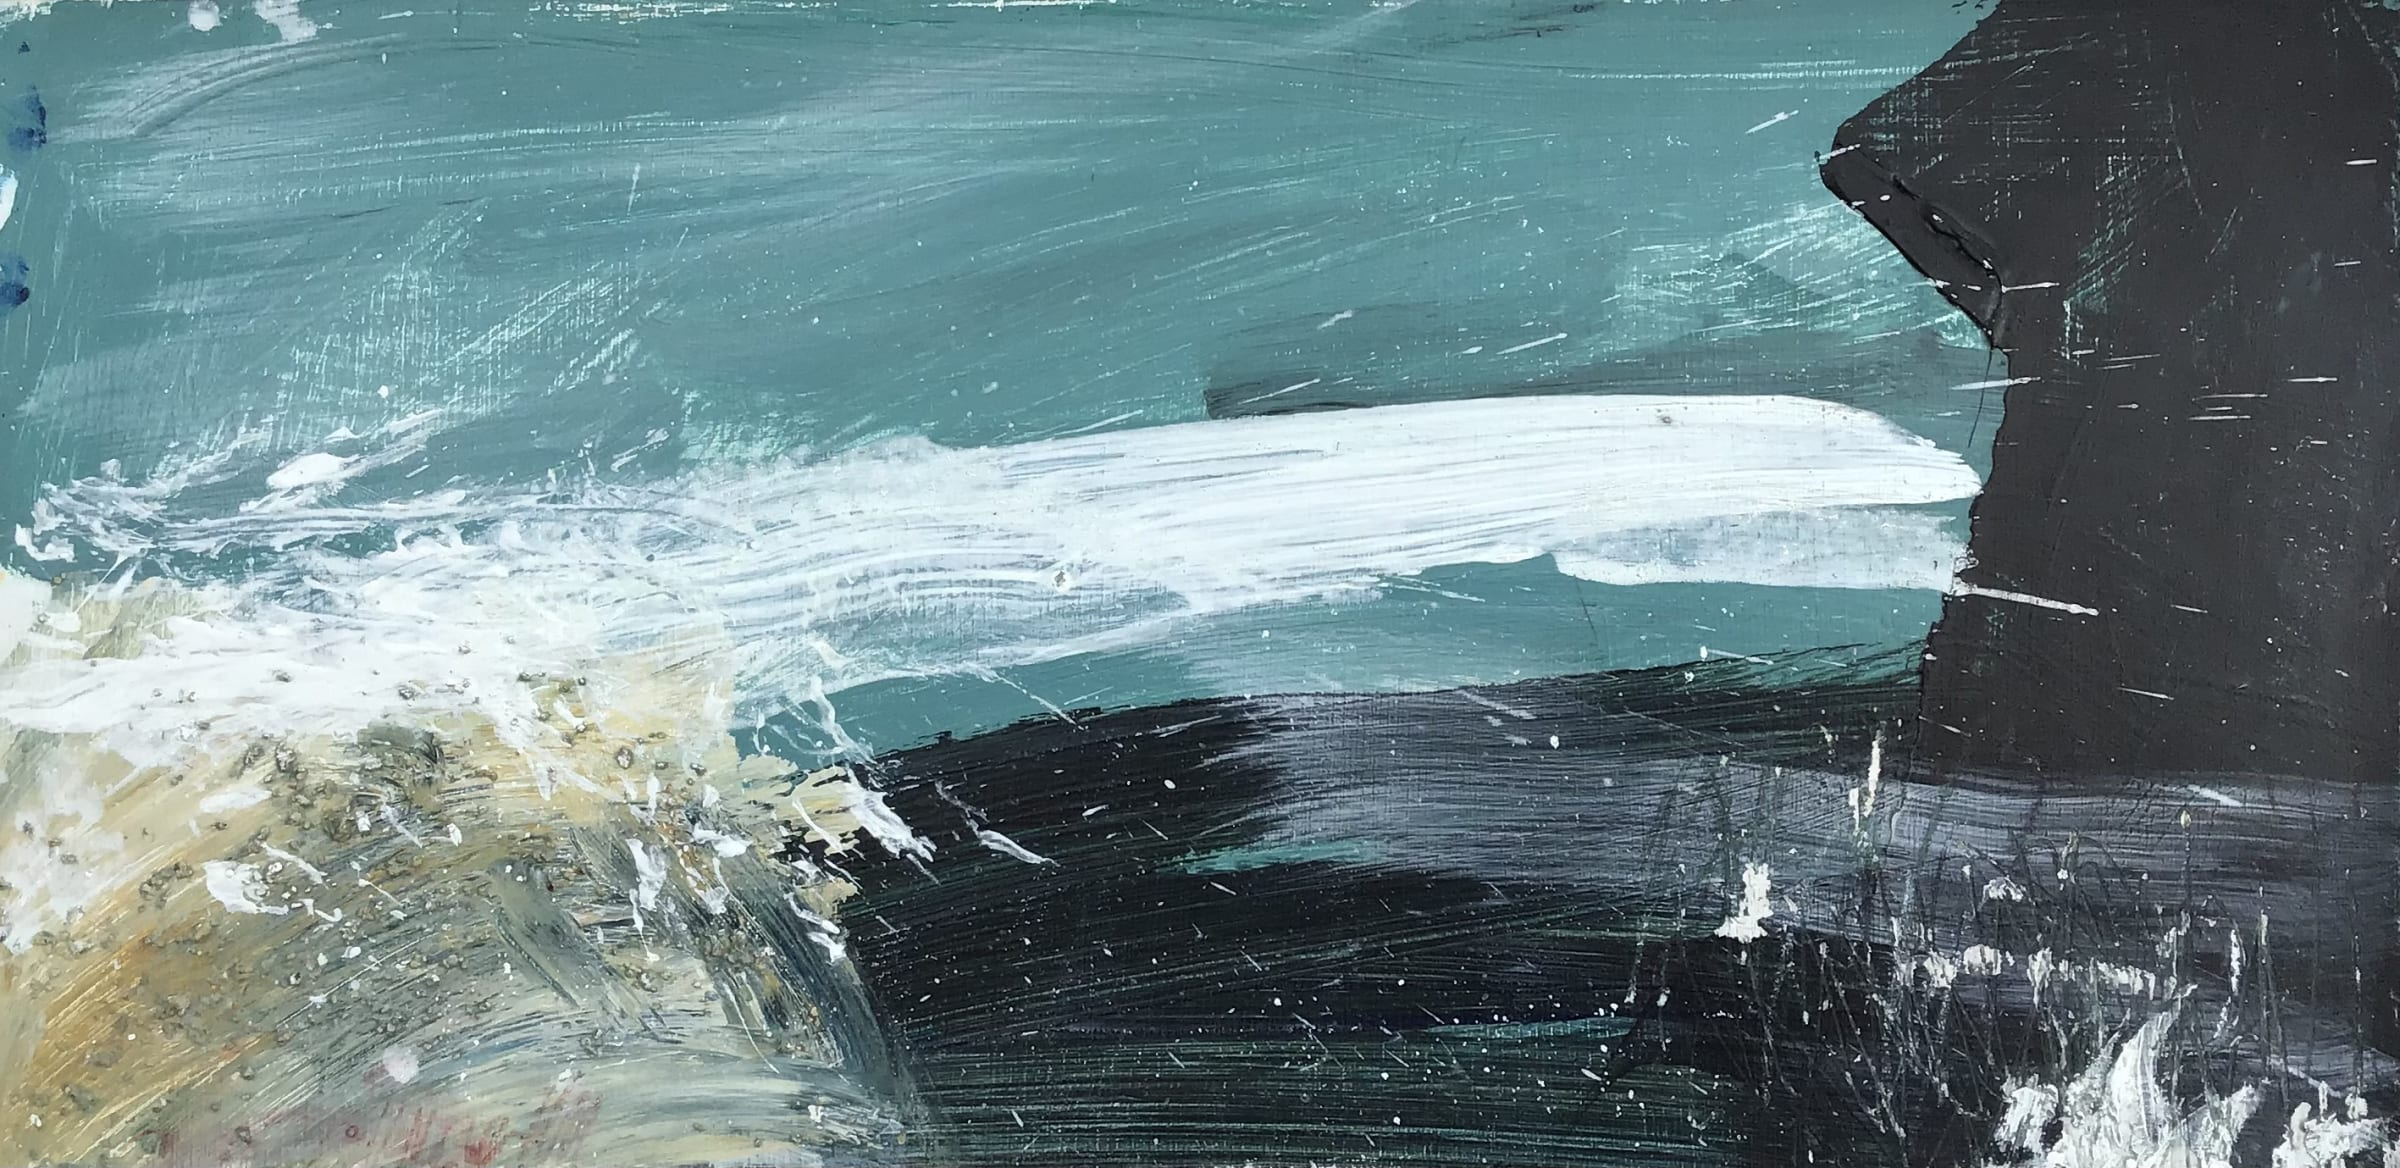 """<span class=""""link fancybox-details-link""""><a href=""""/artists/72-craig-underhill/works/7612-craig-underhill-godrevy-tide-rising-2021/"""">View Detail Page</a></span><div class=""""artist""""><strong>Craig Underhill</strong></div> <div class=""""title""""><em>Godrevy - Tide Rising</em>, 2021</div> <div class=""""medium"""">mixed media on board</div> <div class=""""dimensions"""">board size: h. 20 x w. 40 cm<br /> frame size: h. 25 x 44 cm</div><div class=""""copyright_line"""">Ownart: £39.50 x 10 Months, 0% APR</div>"""